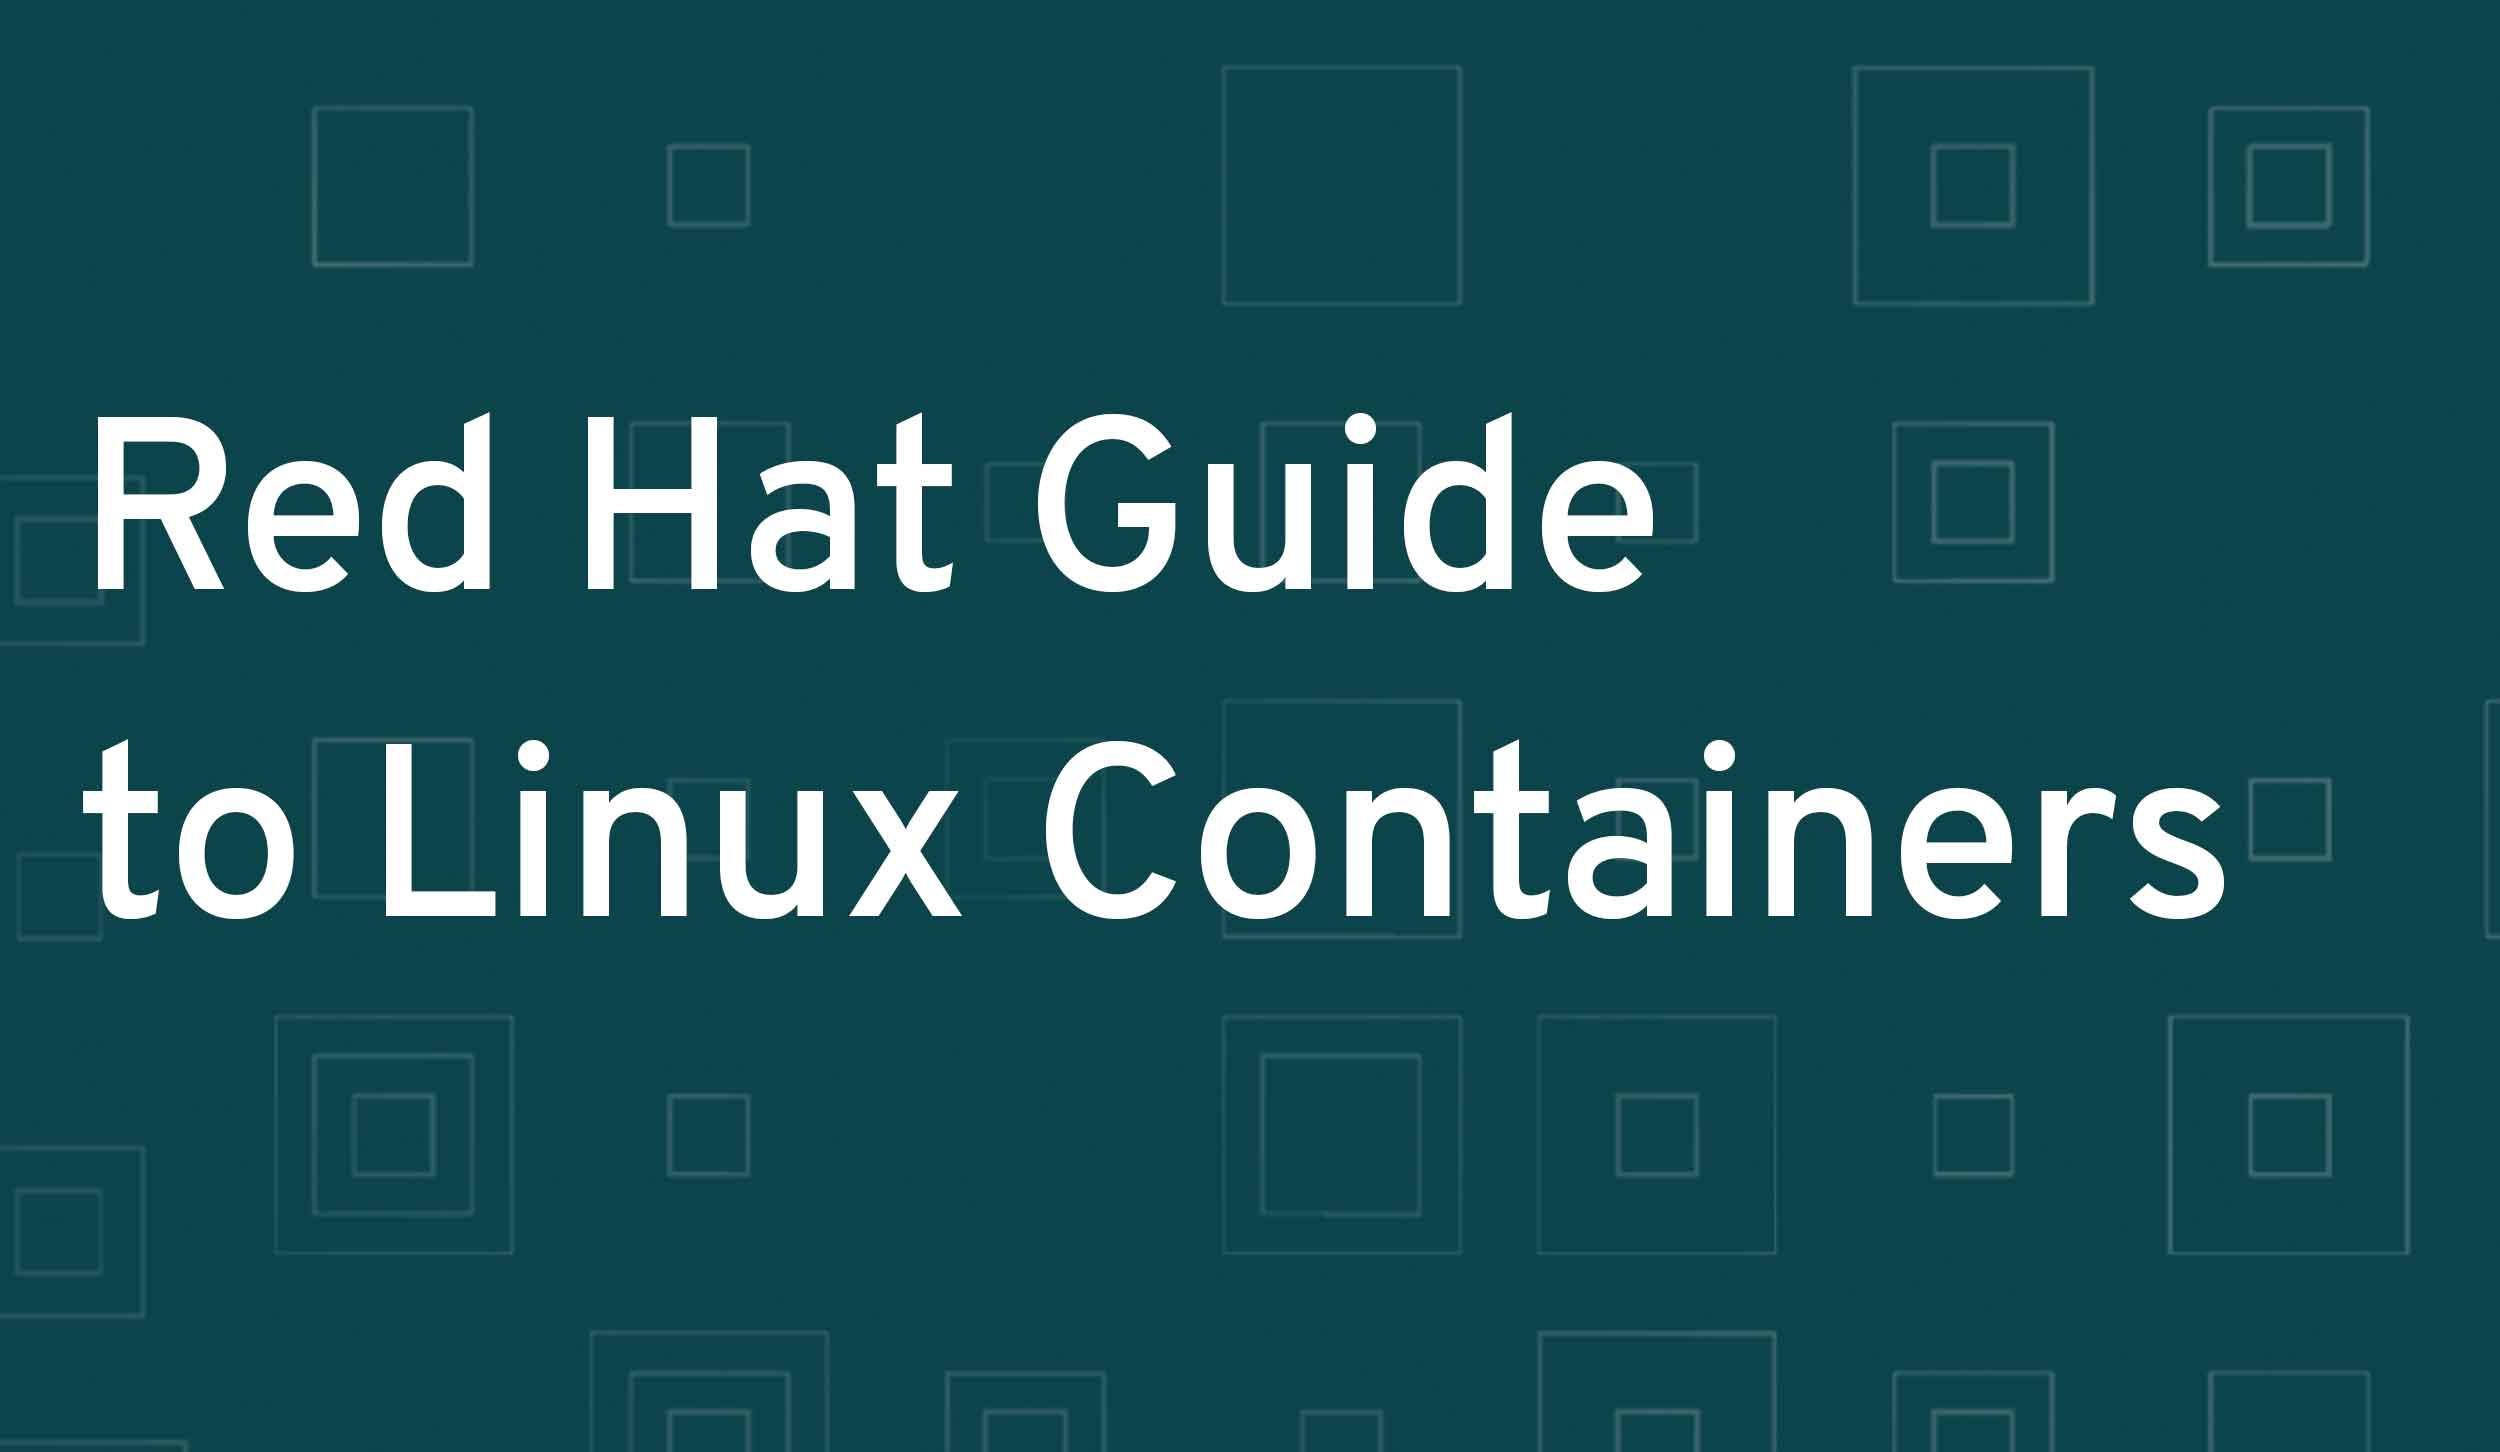 Red Hat Guide to Linux Containers